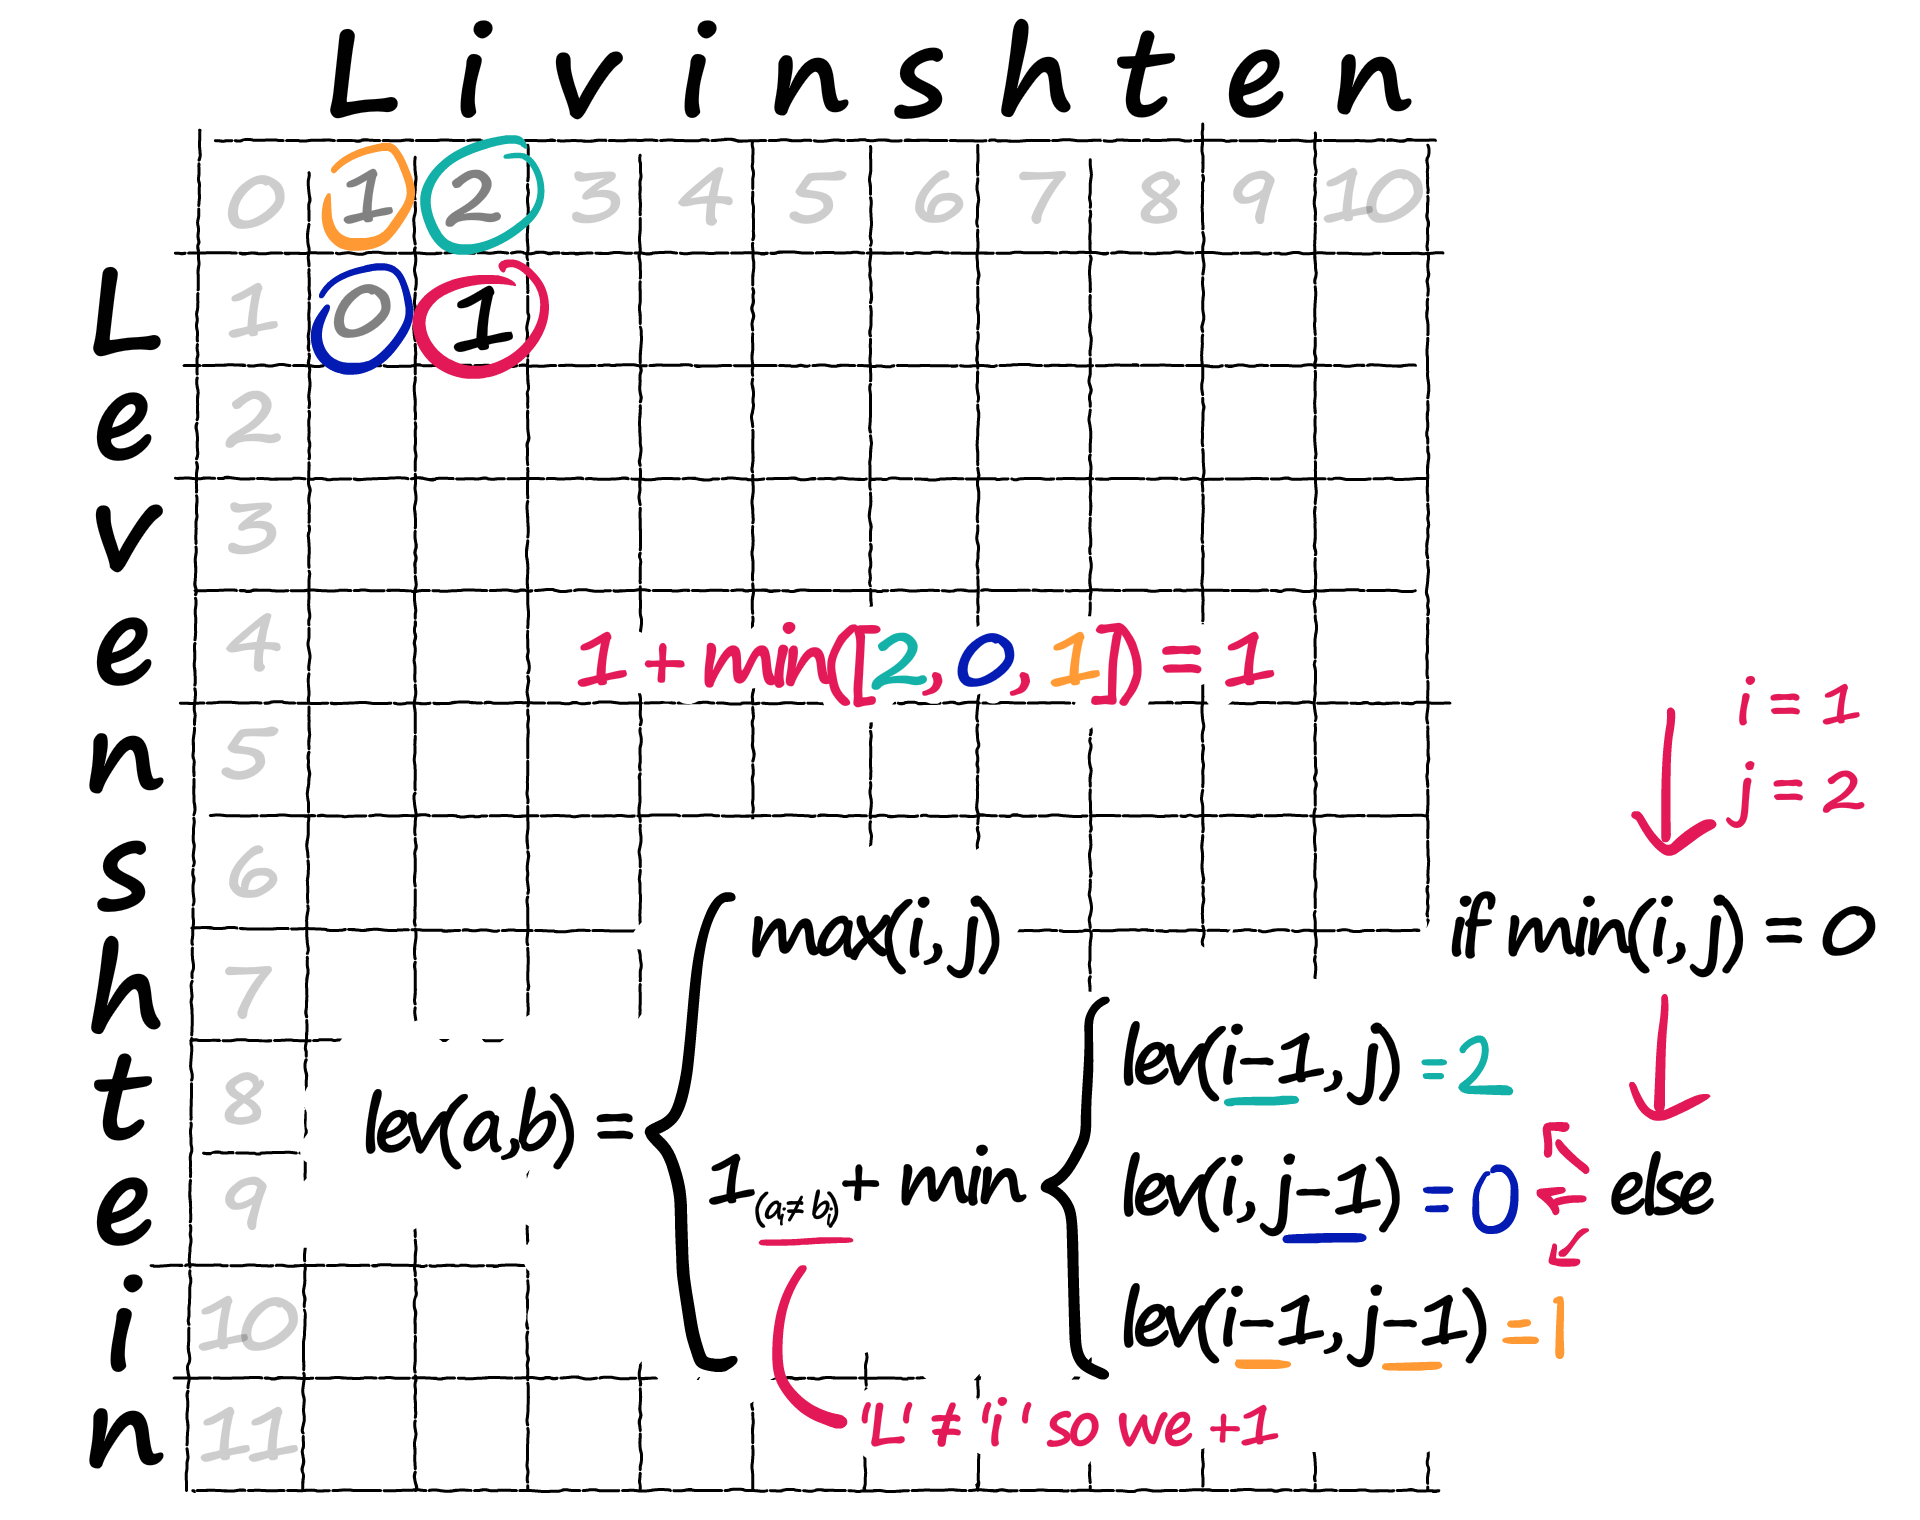 If a[i] != b[j] we add 1 to our minimum value — this is the penalty for mismatched characters.